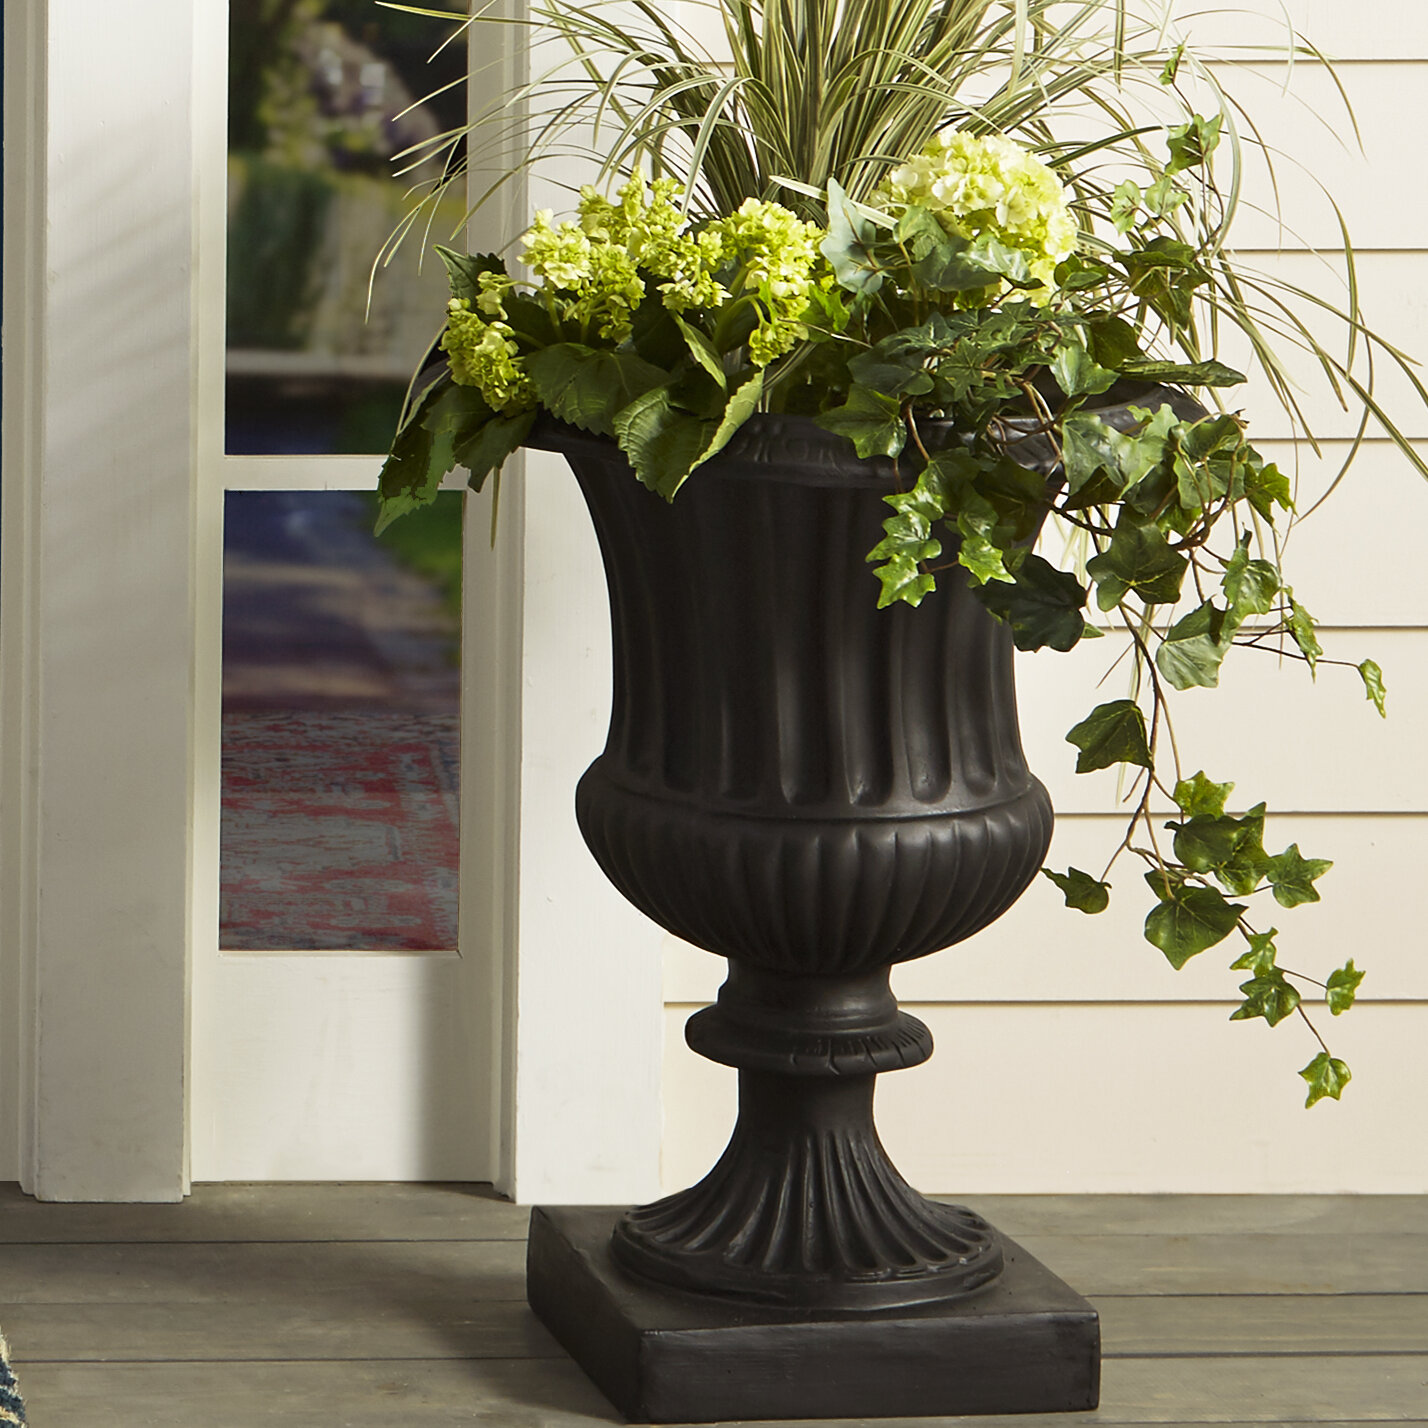 planting for simpsonovi large urns planter concrete urn info sale